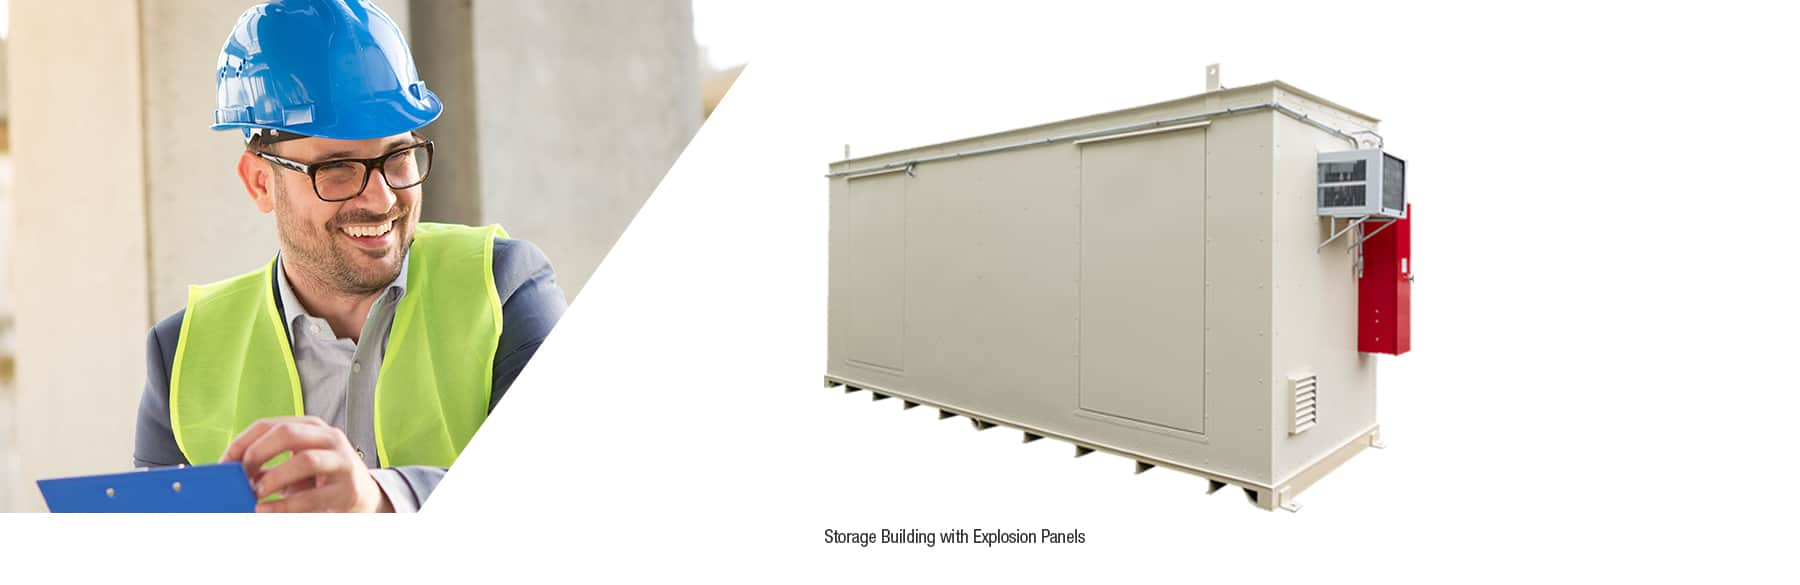 chemical storage unit with explosion panels